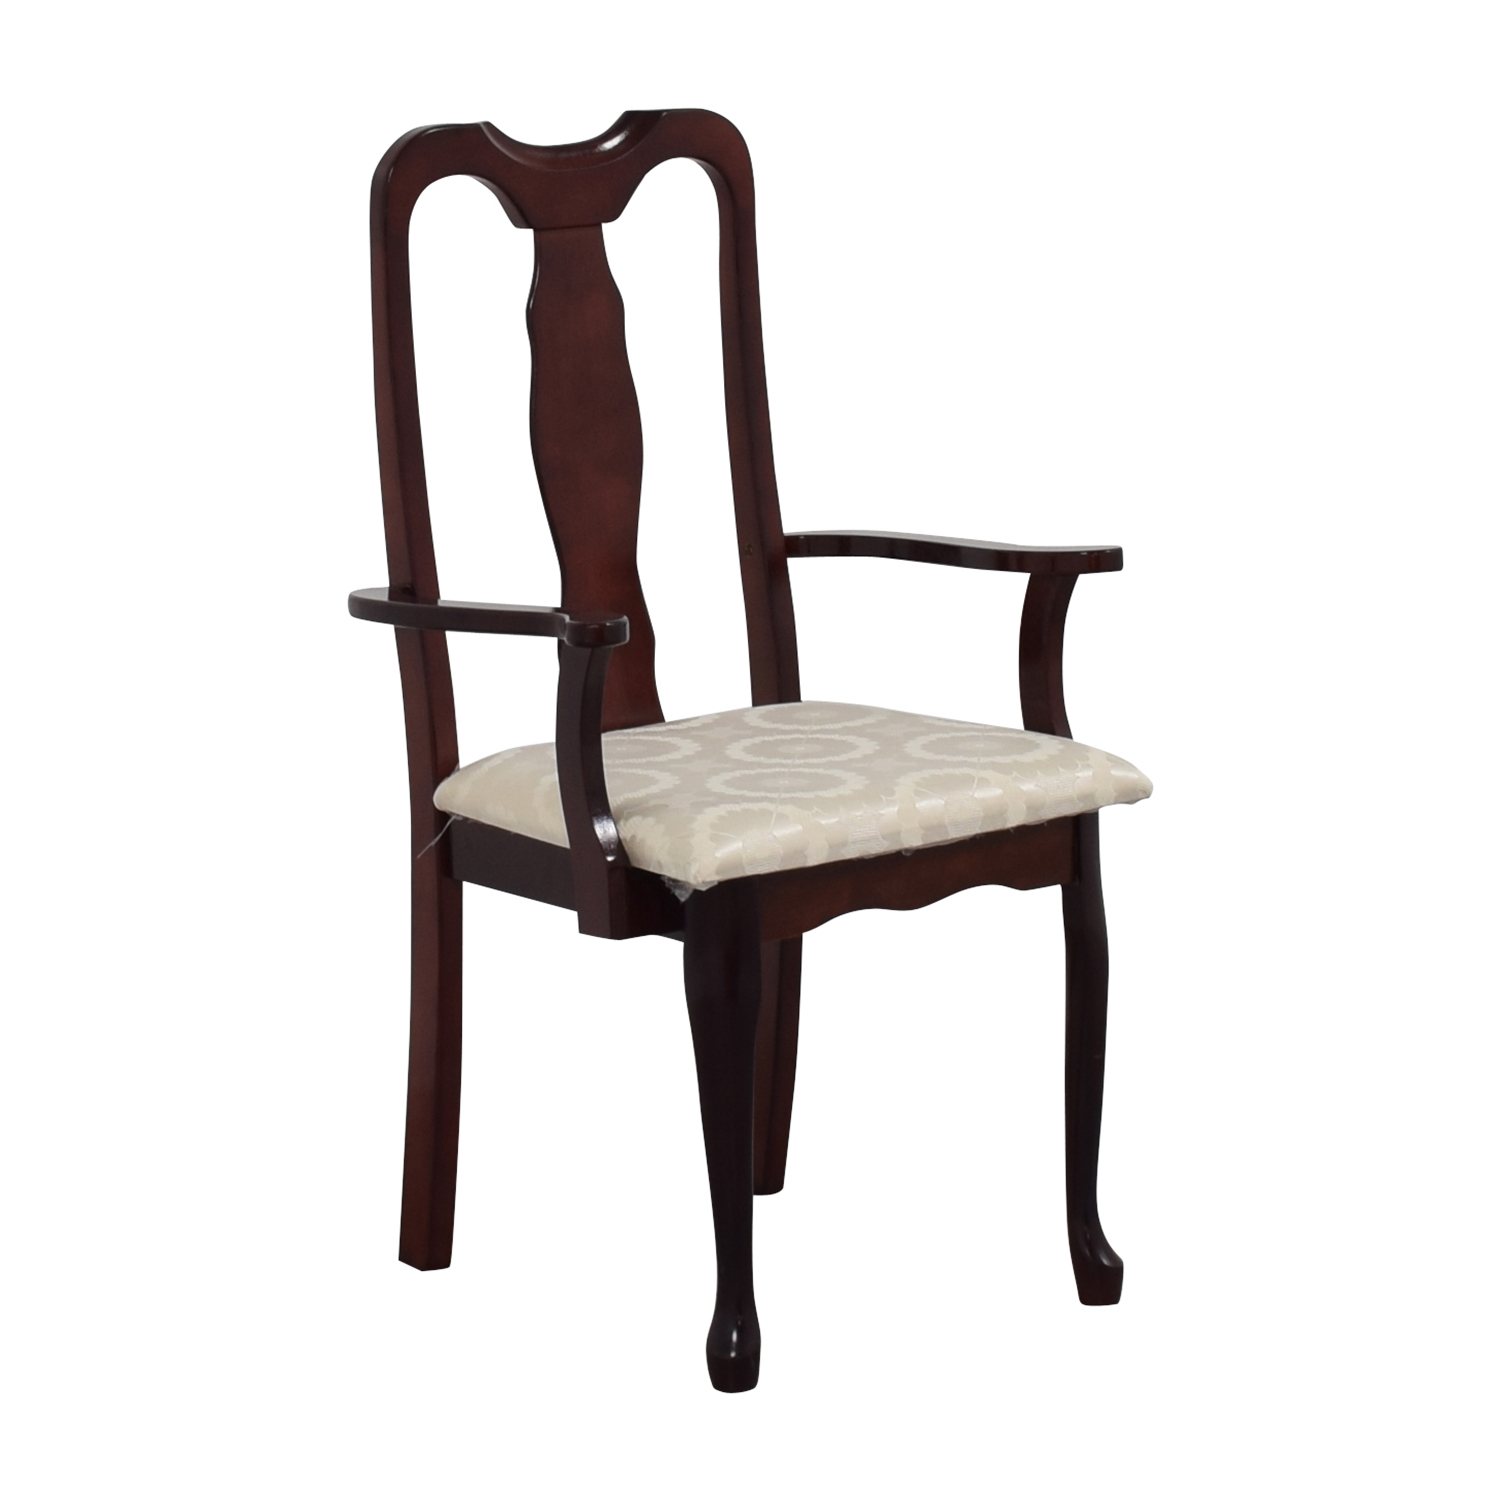 Cherry Wood Arm Chair in White Upholstery BROWN